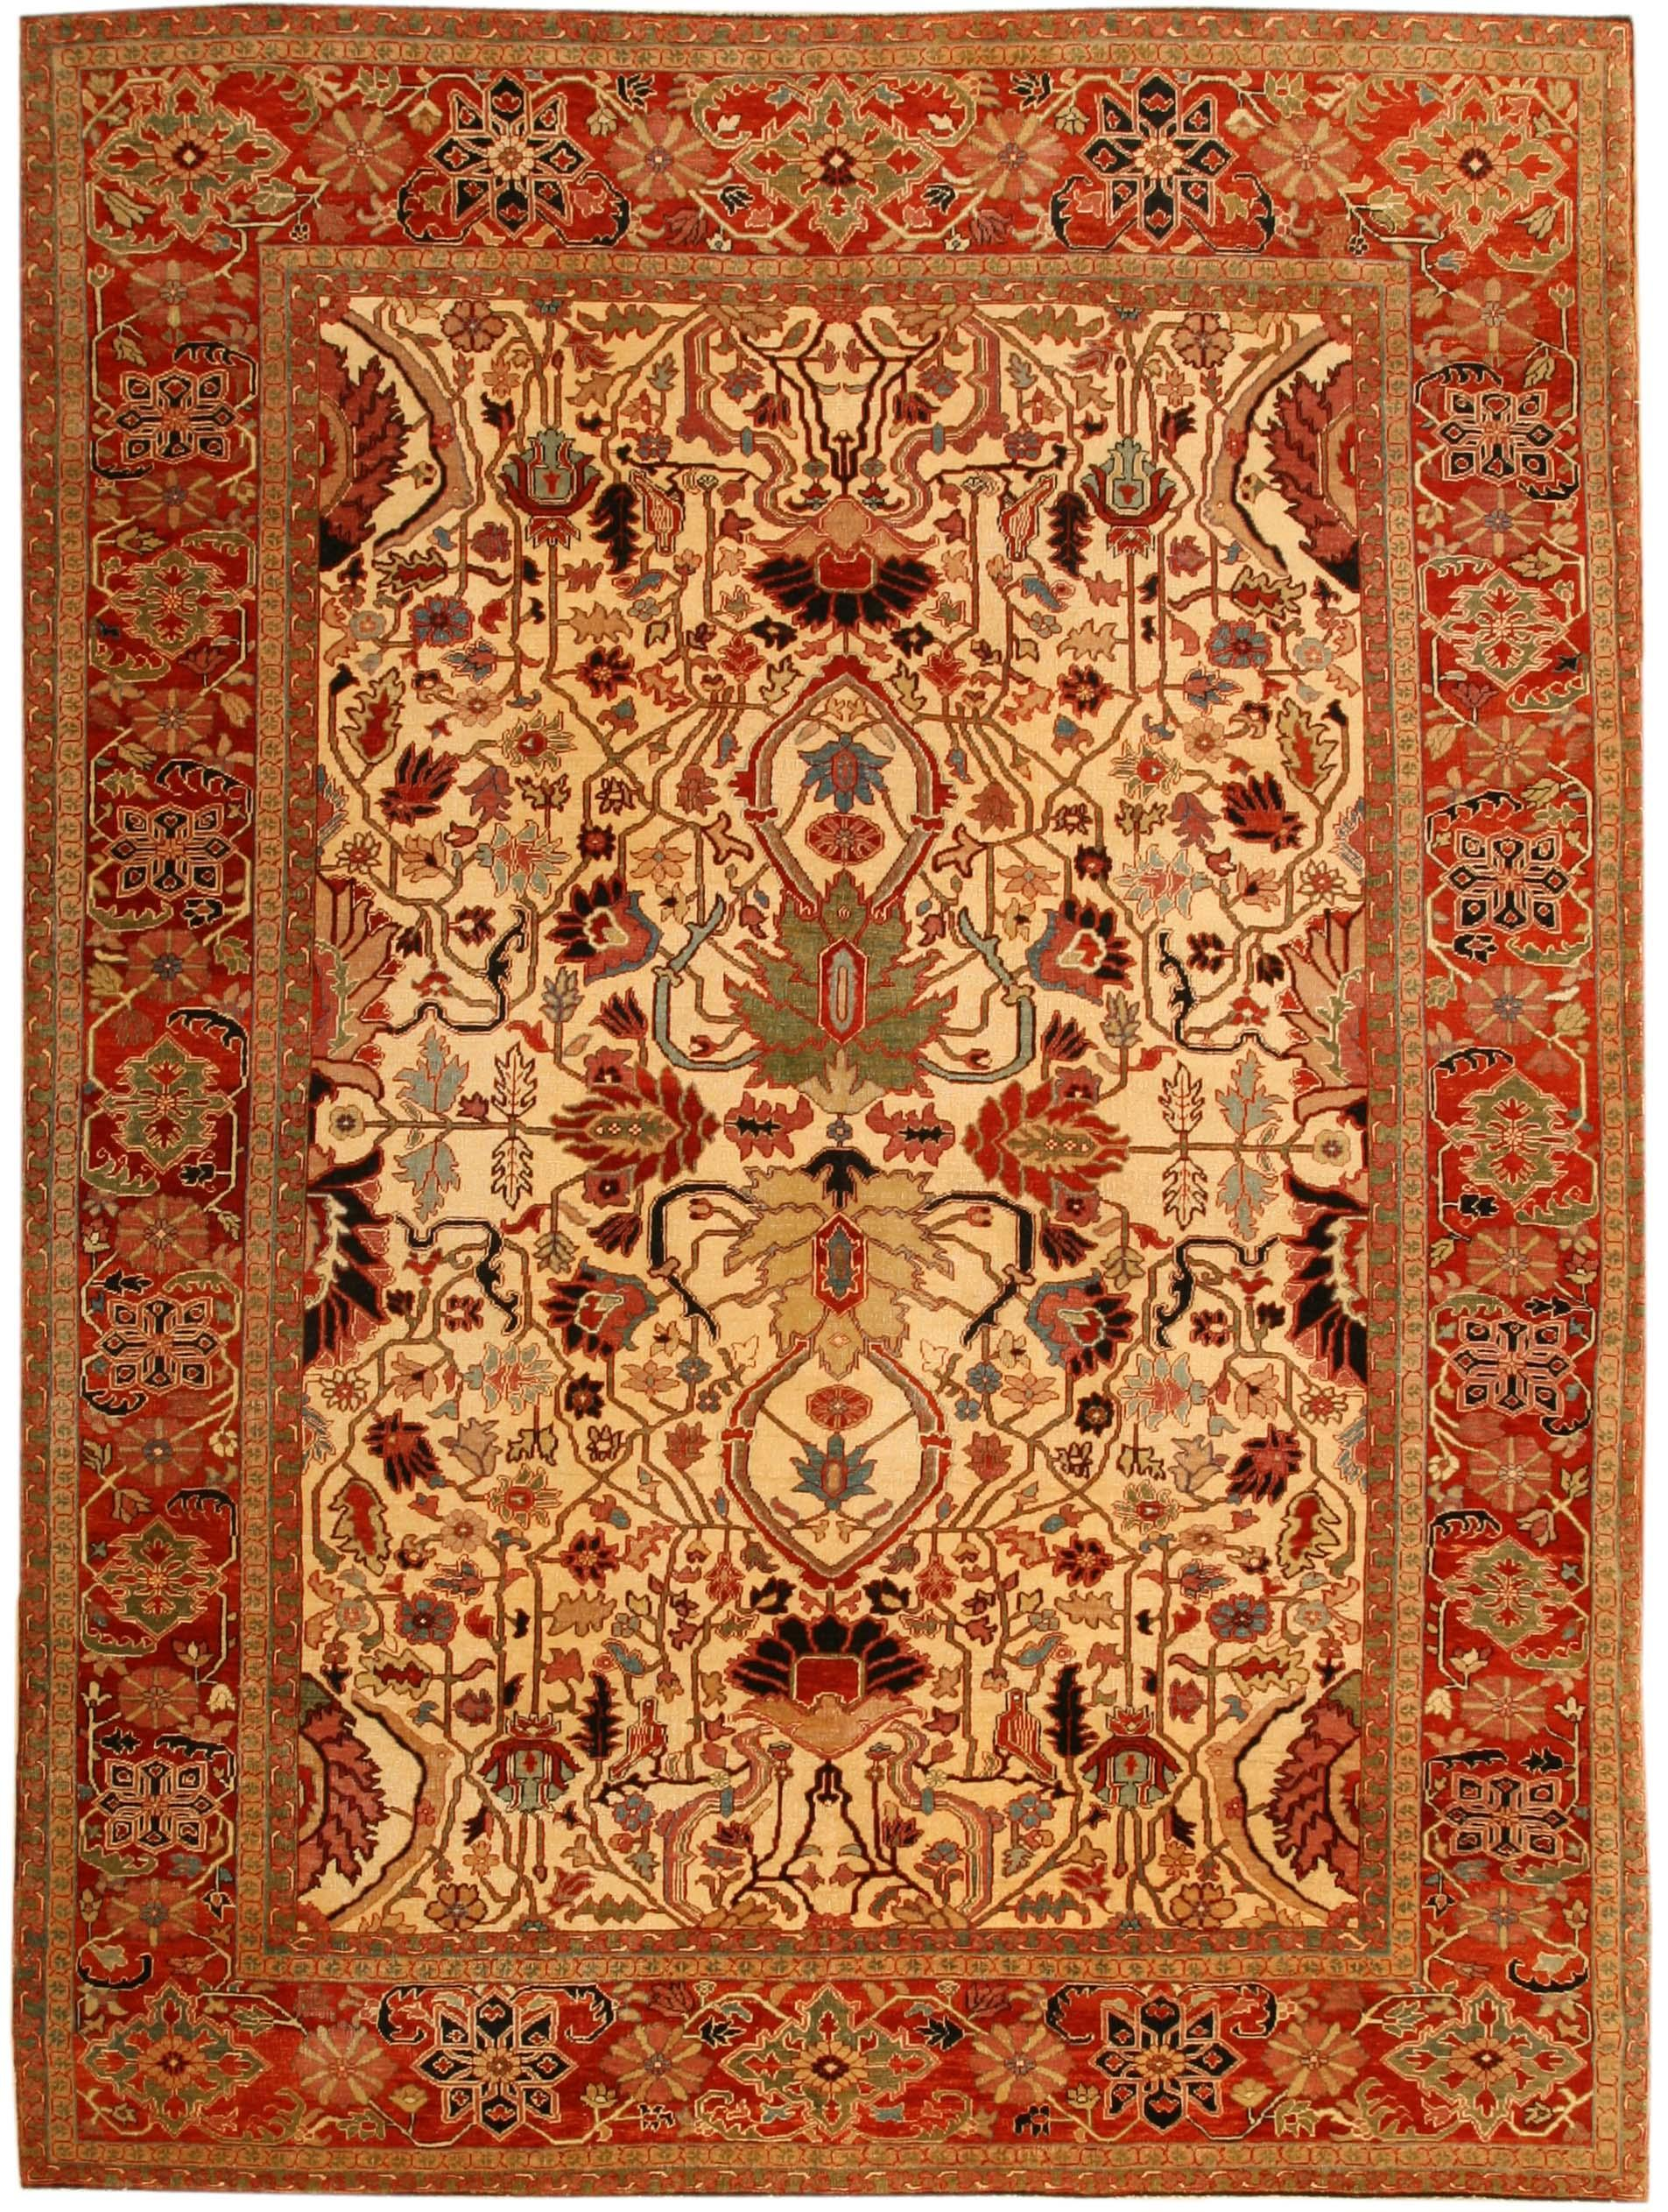 Amazing turkish rugs heriz design turkish rug / carpet 18406. loading zoom glgqxxs